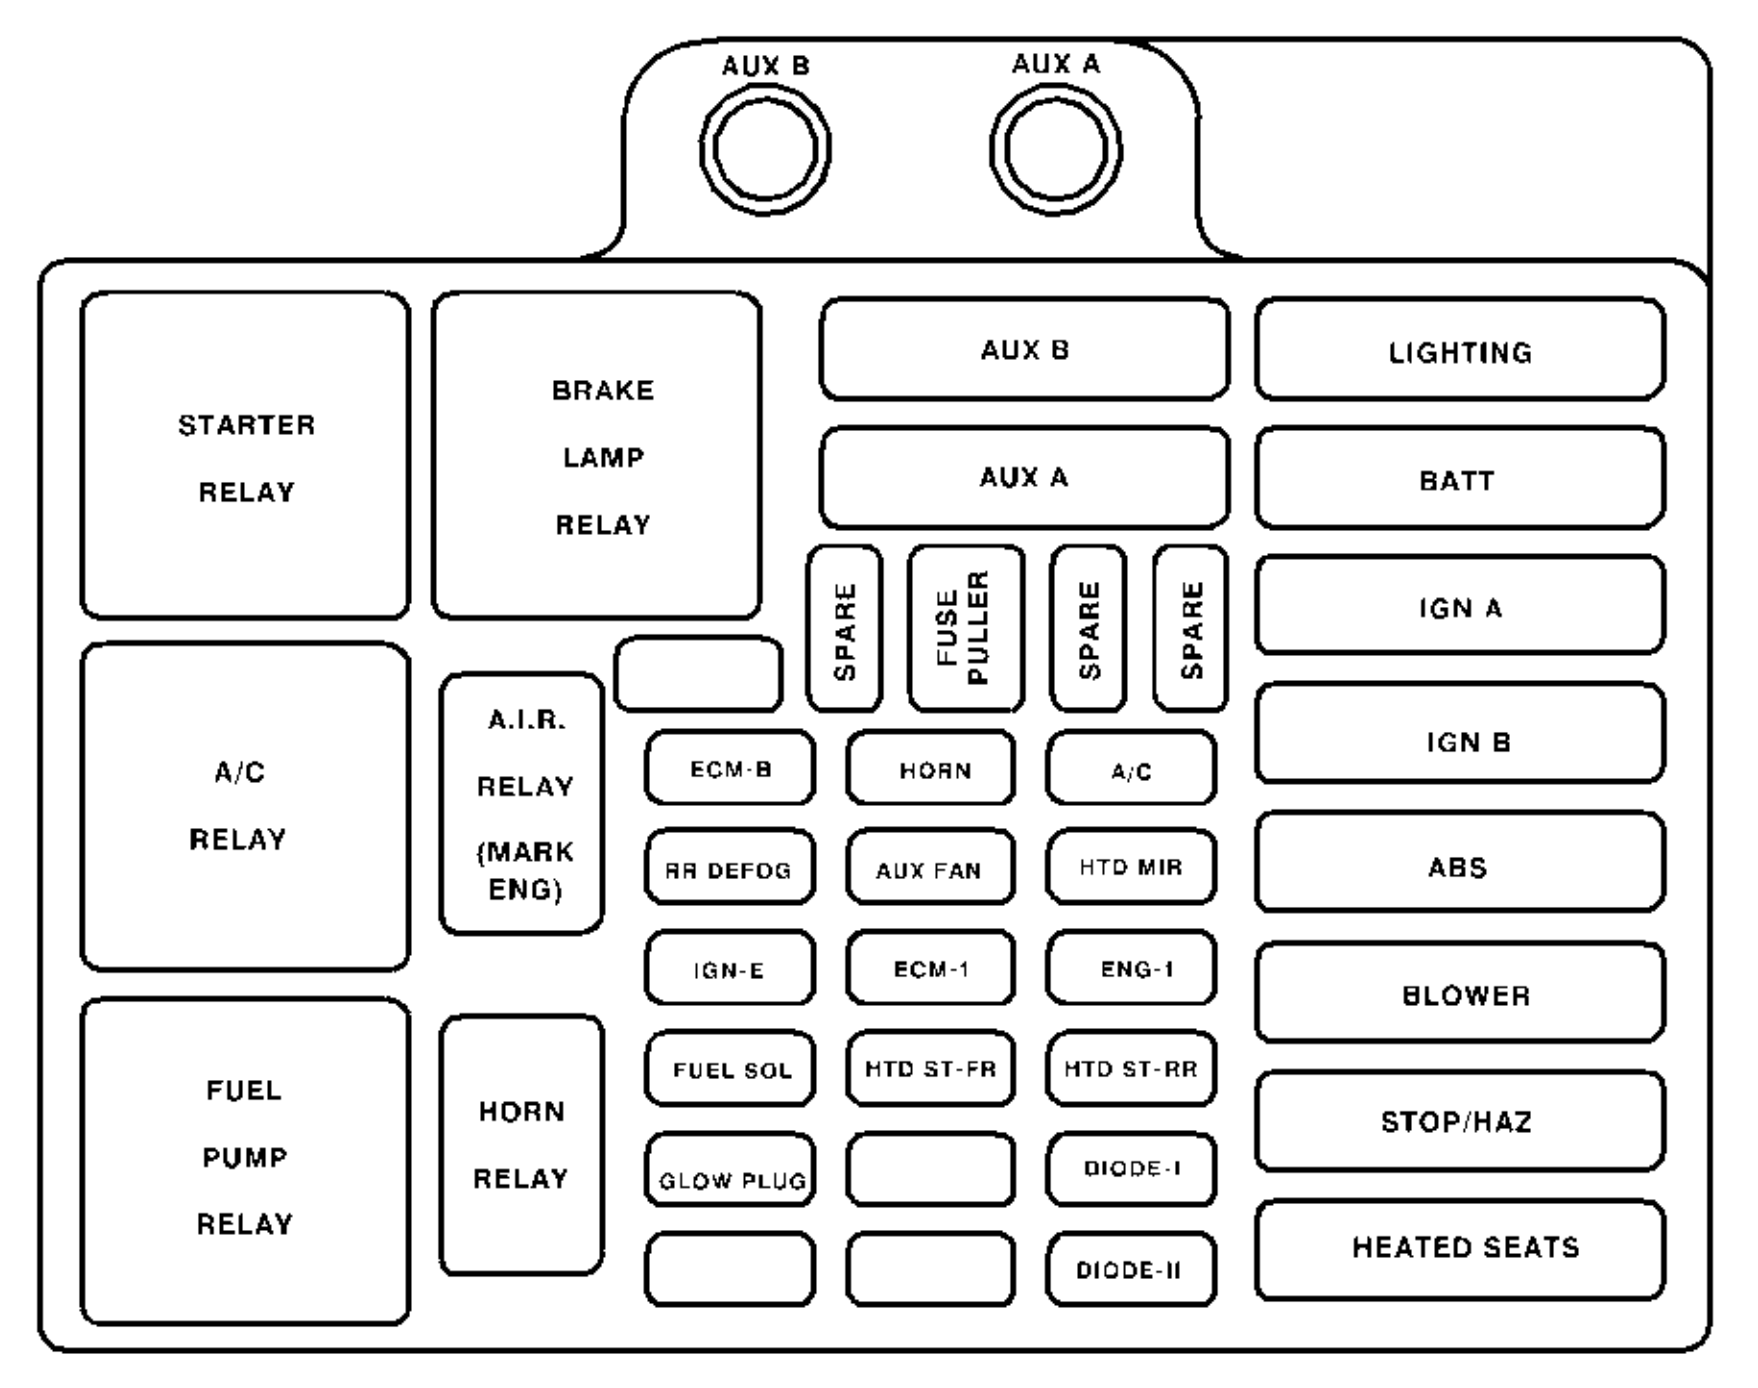 hight resolution of 98 suburban fuse box wiring diagram third level 2005 suburban fuse diagram chevy suburban fuse box